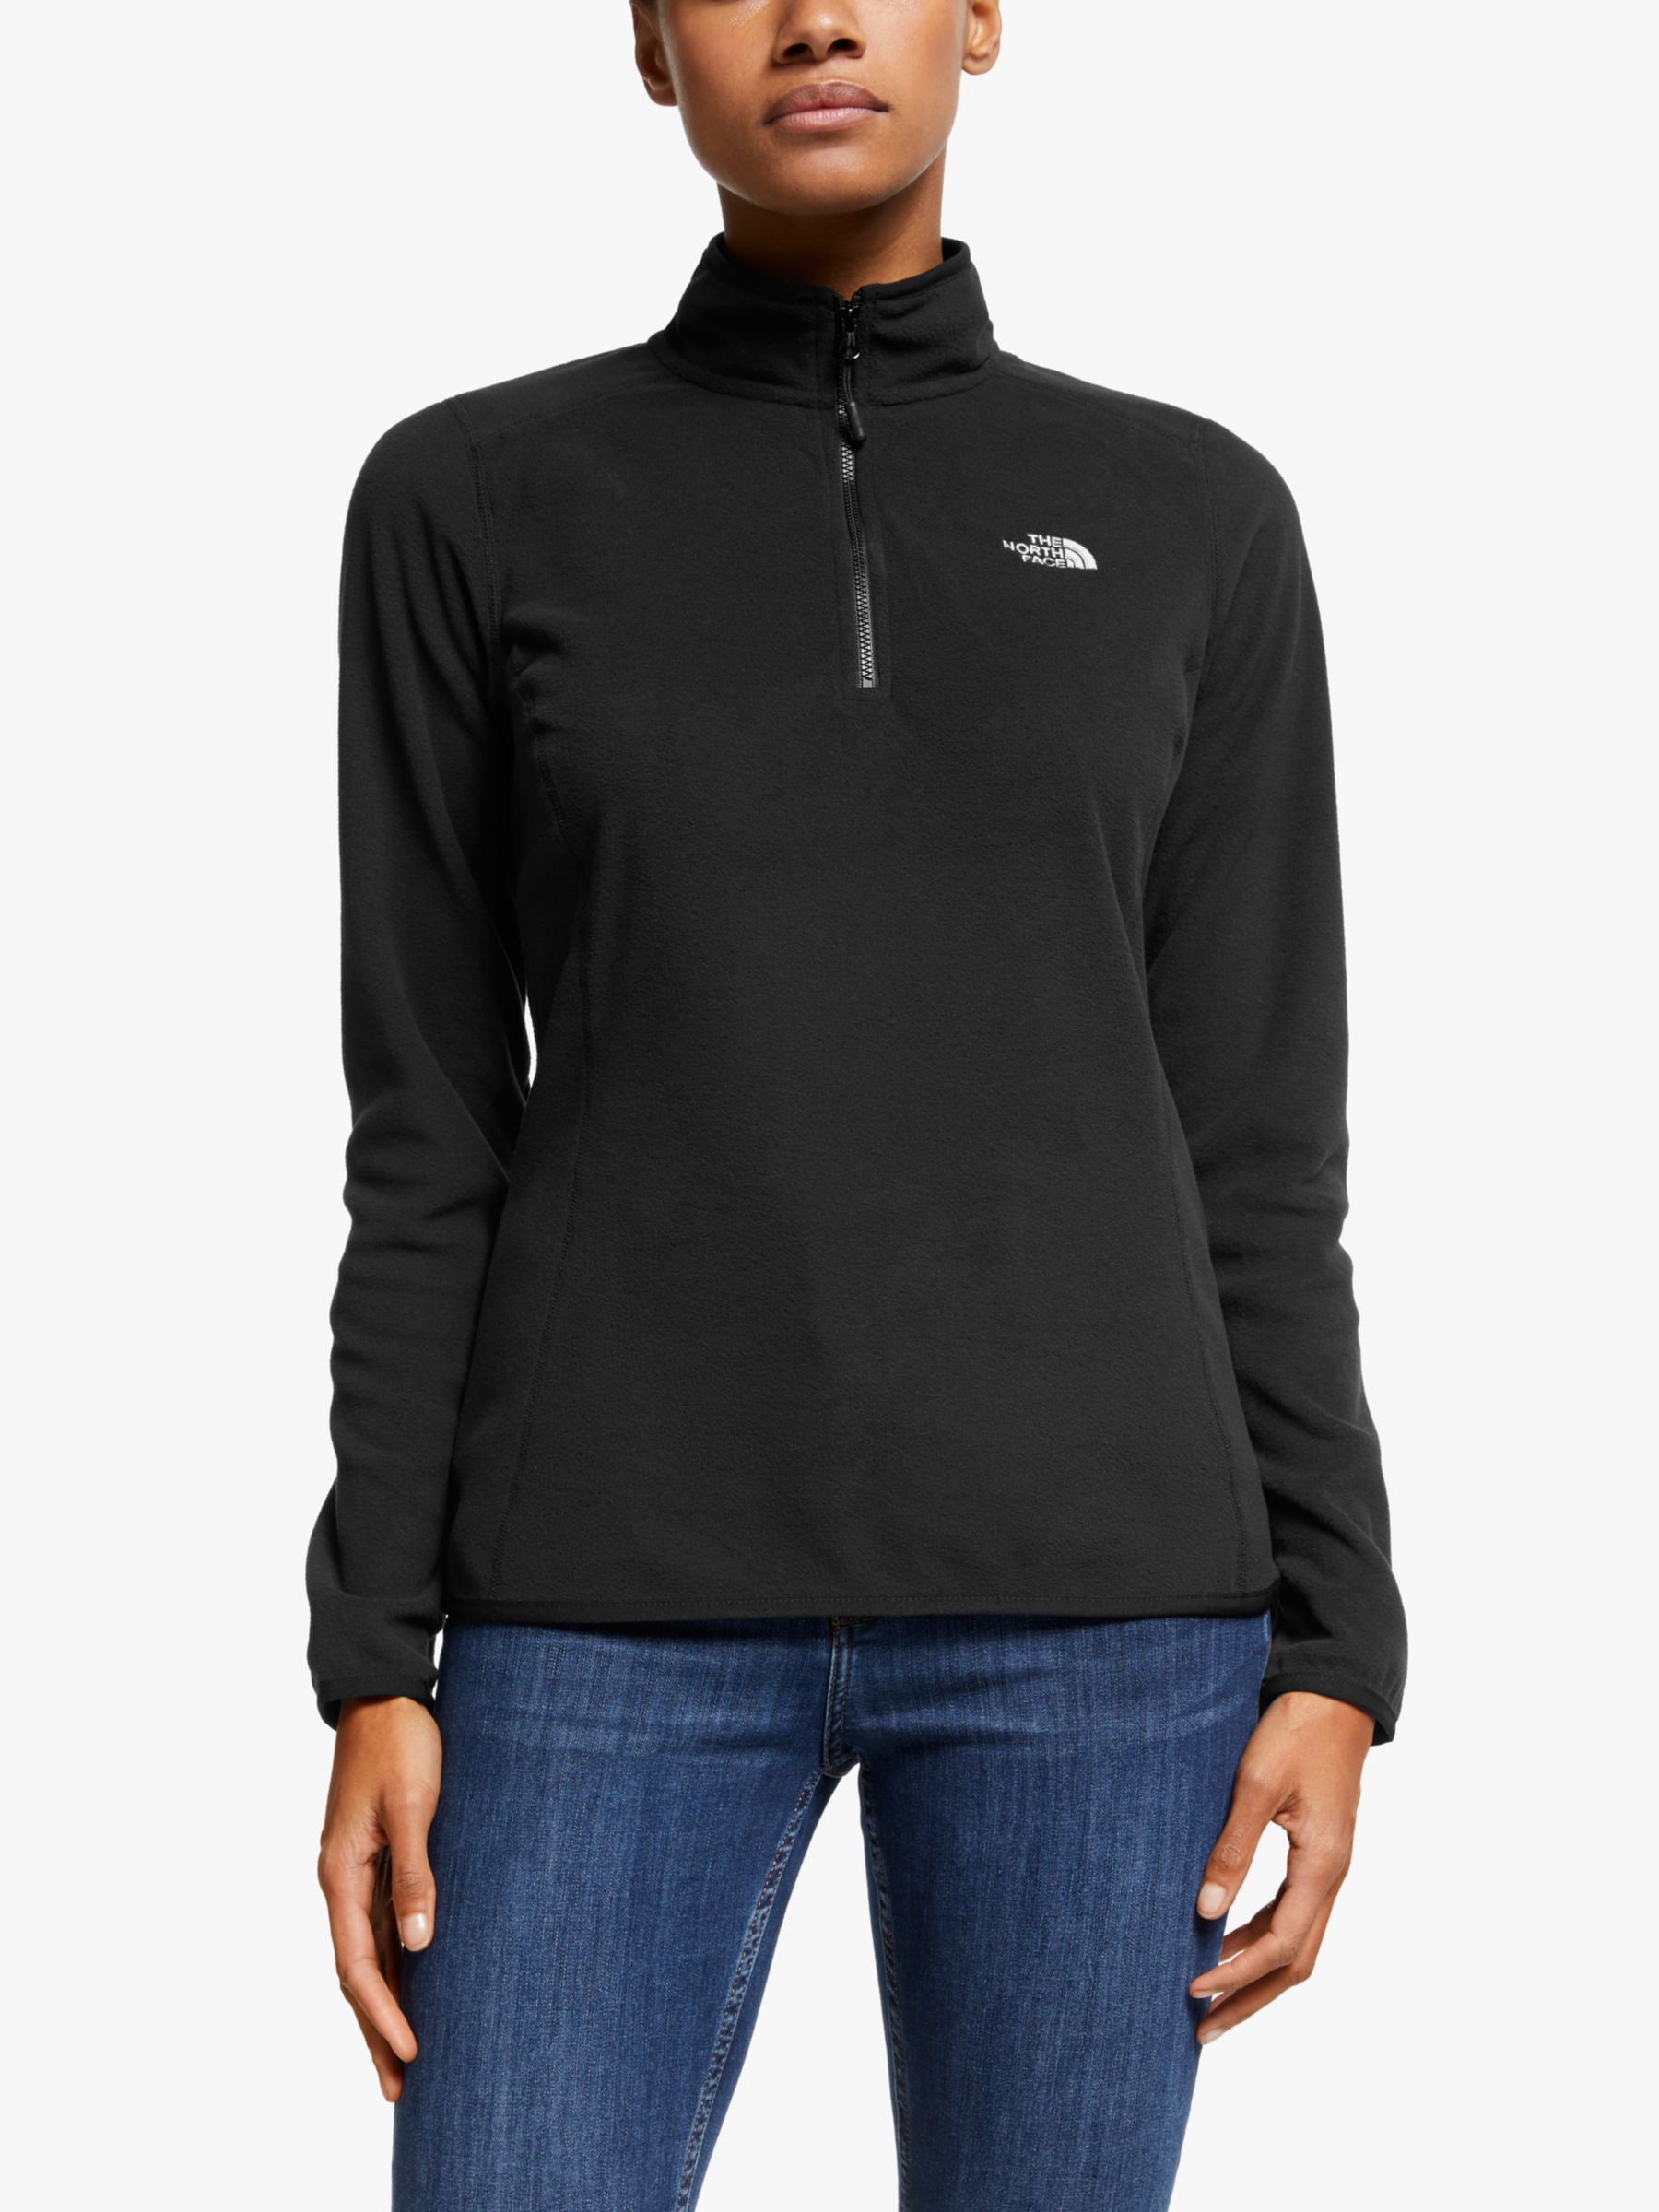 The North Face The North Face 100 Glacier 1/4 Zip Women's Fleece, Black